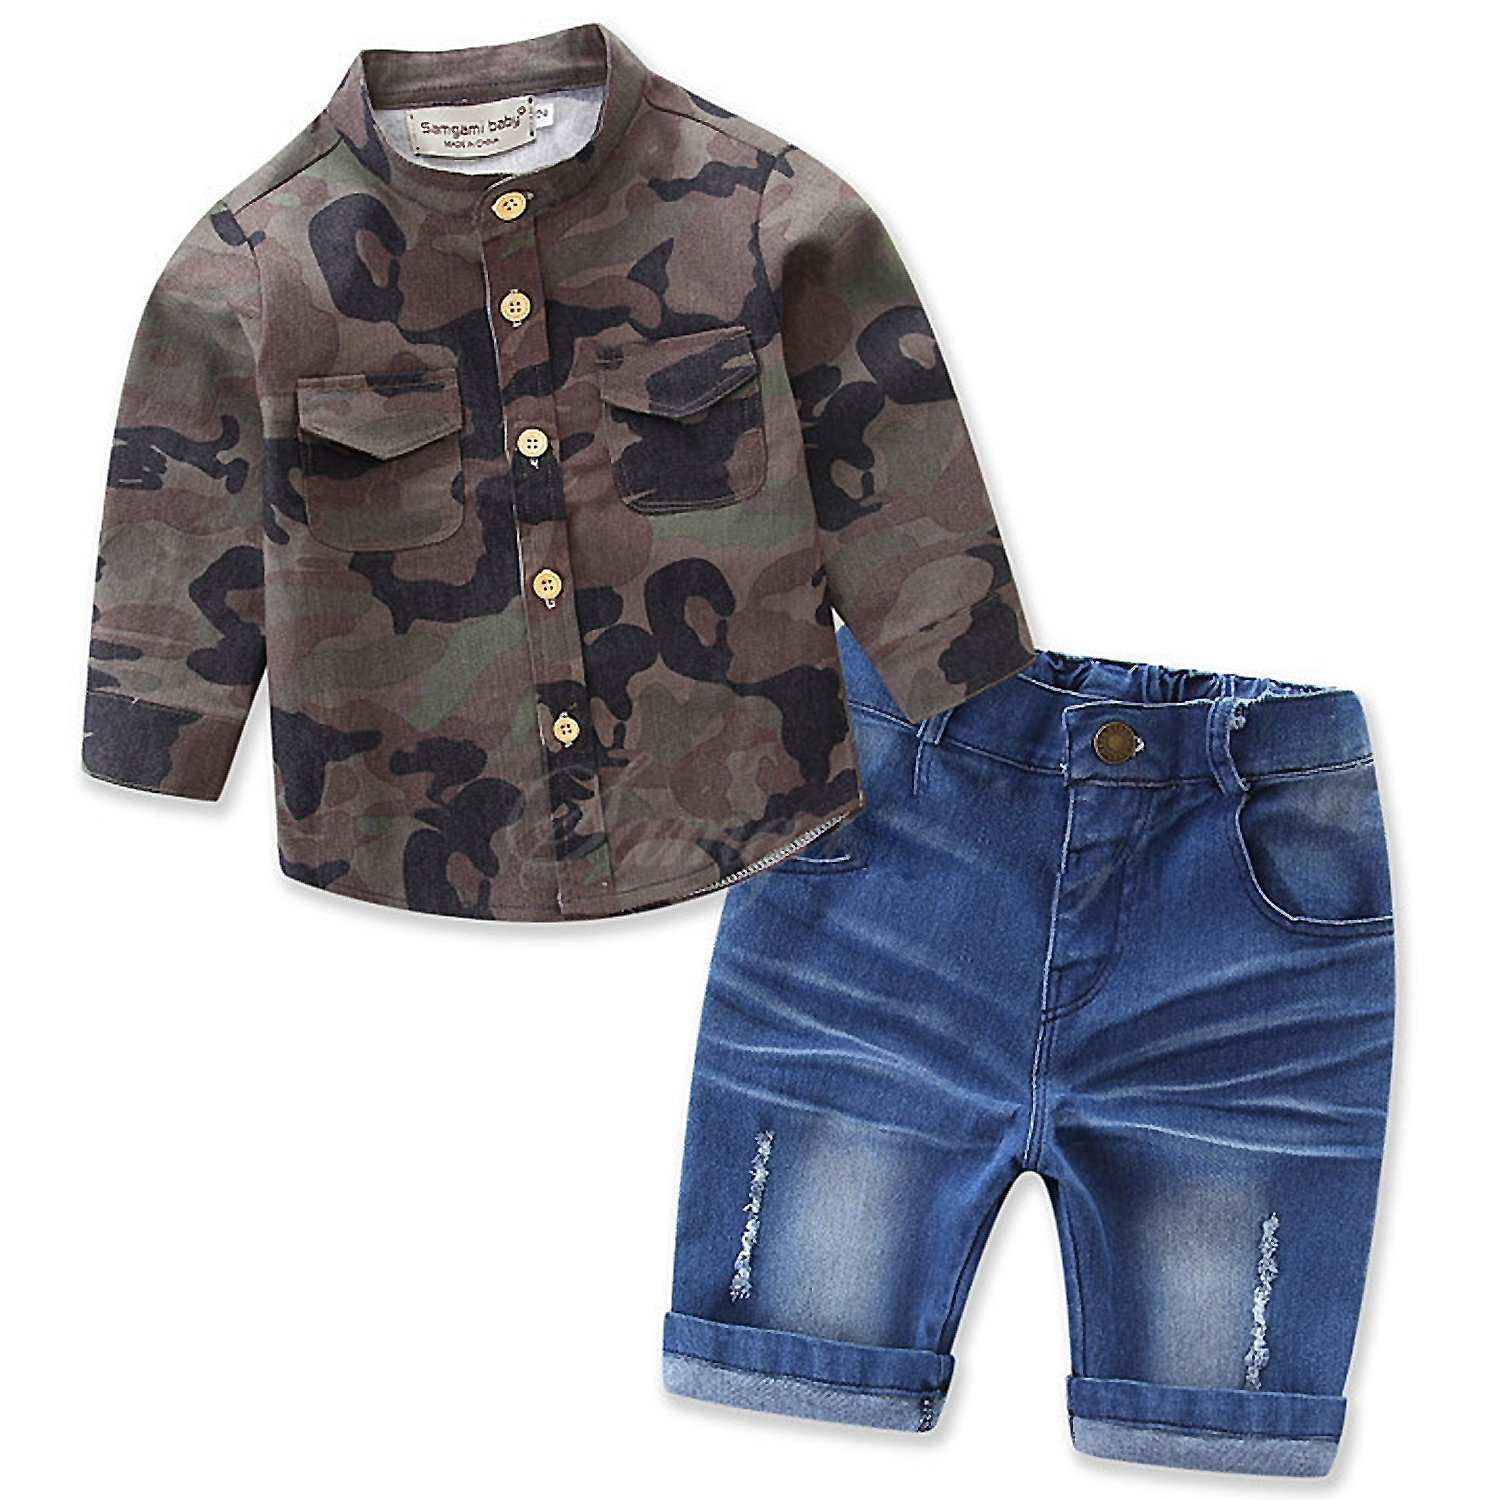 Milkiwai Long Sleeve Romper Gentleman Outfits with Bow Formal Jumpsuit for Baby Kid Boys